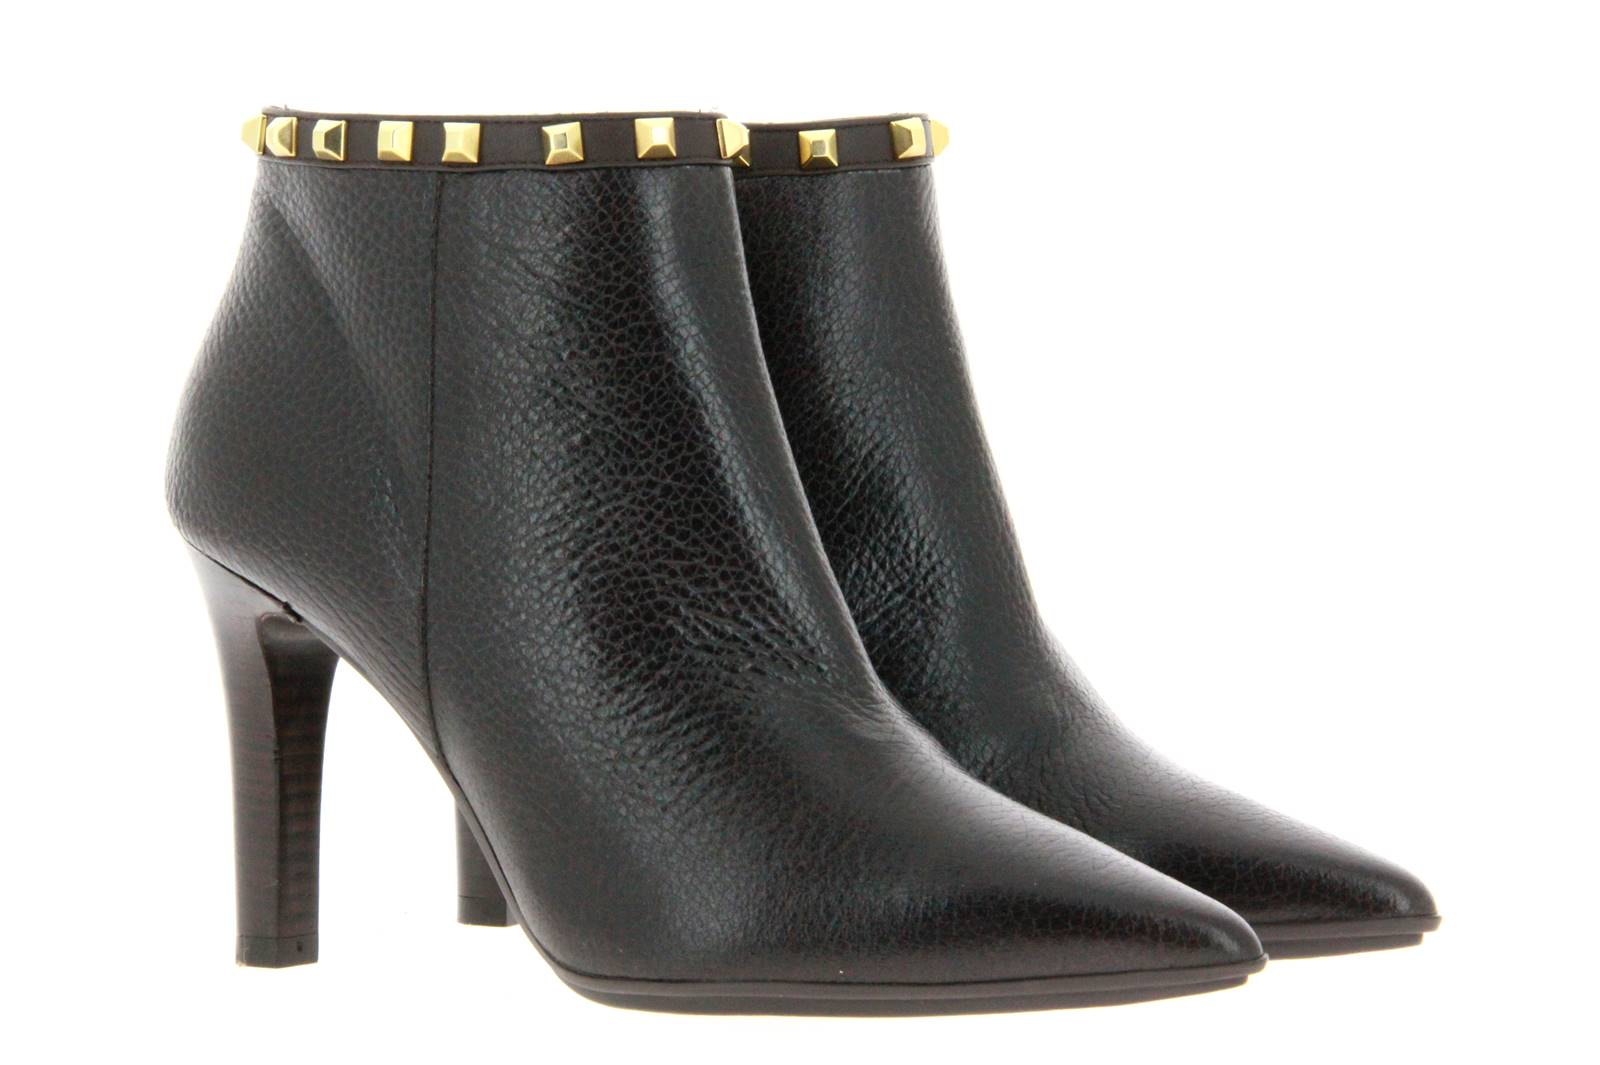 Lodi high heel ankle boots REALES TESTA